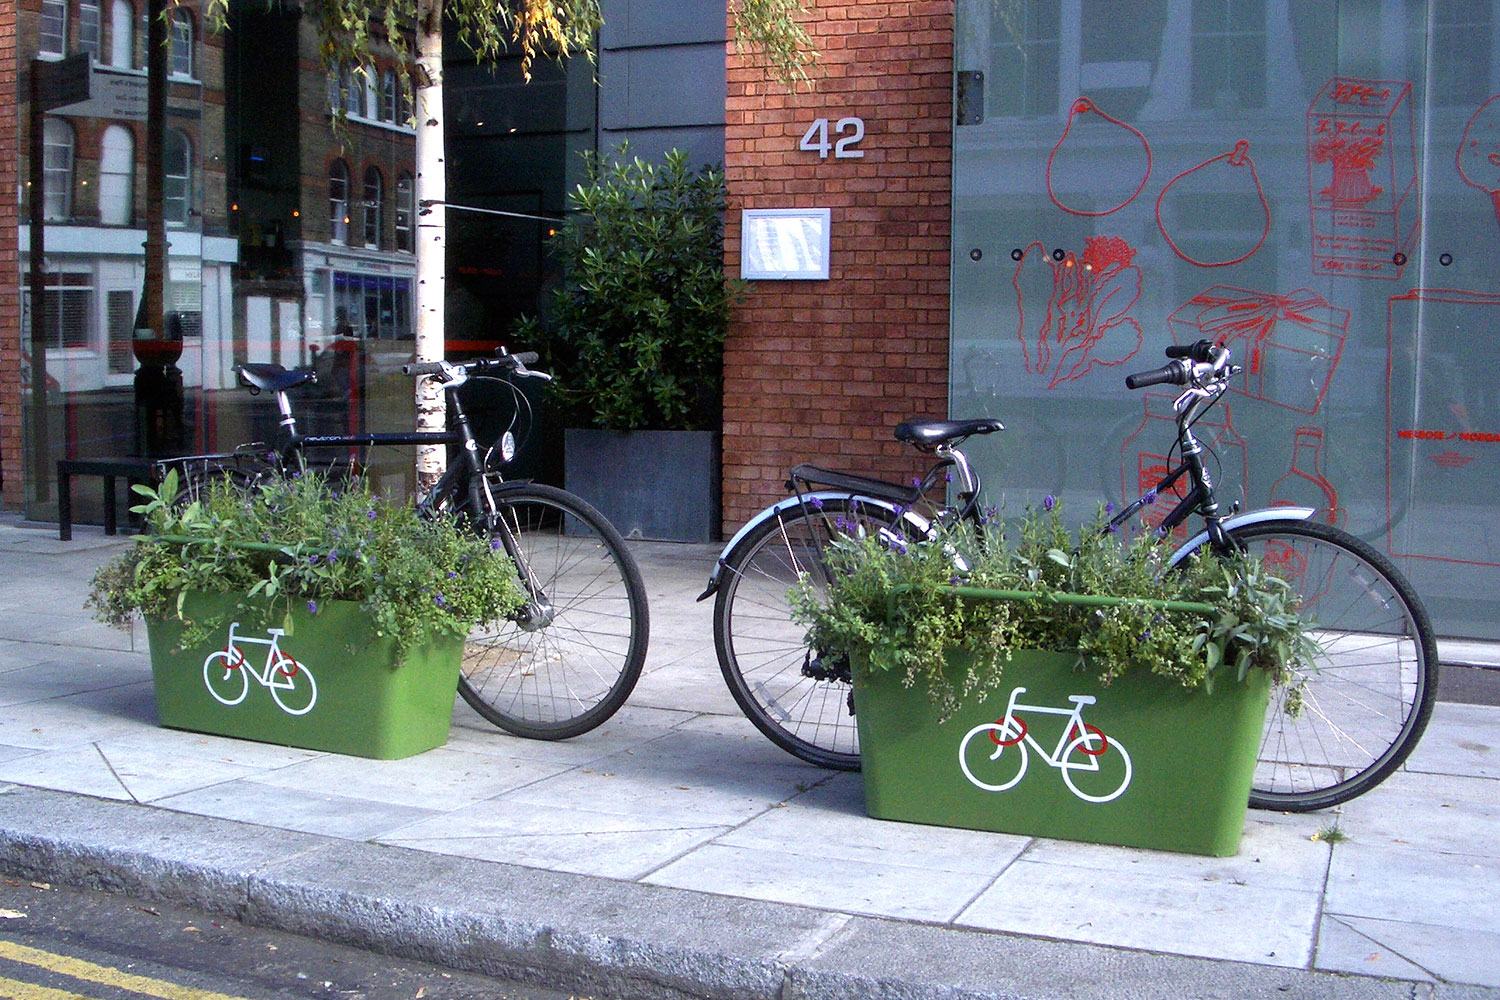 Green PlantLocks with decals on one side.